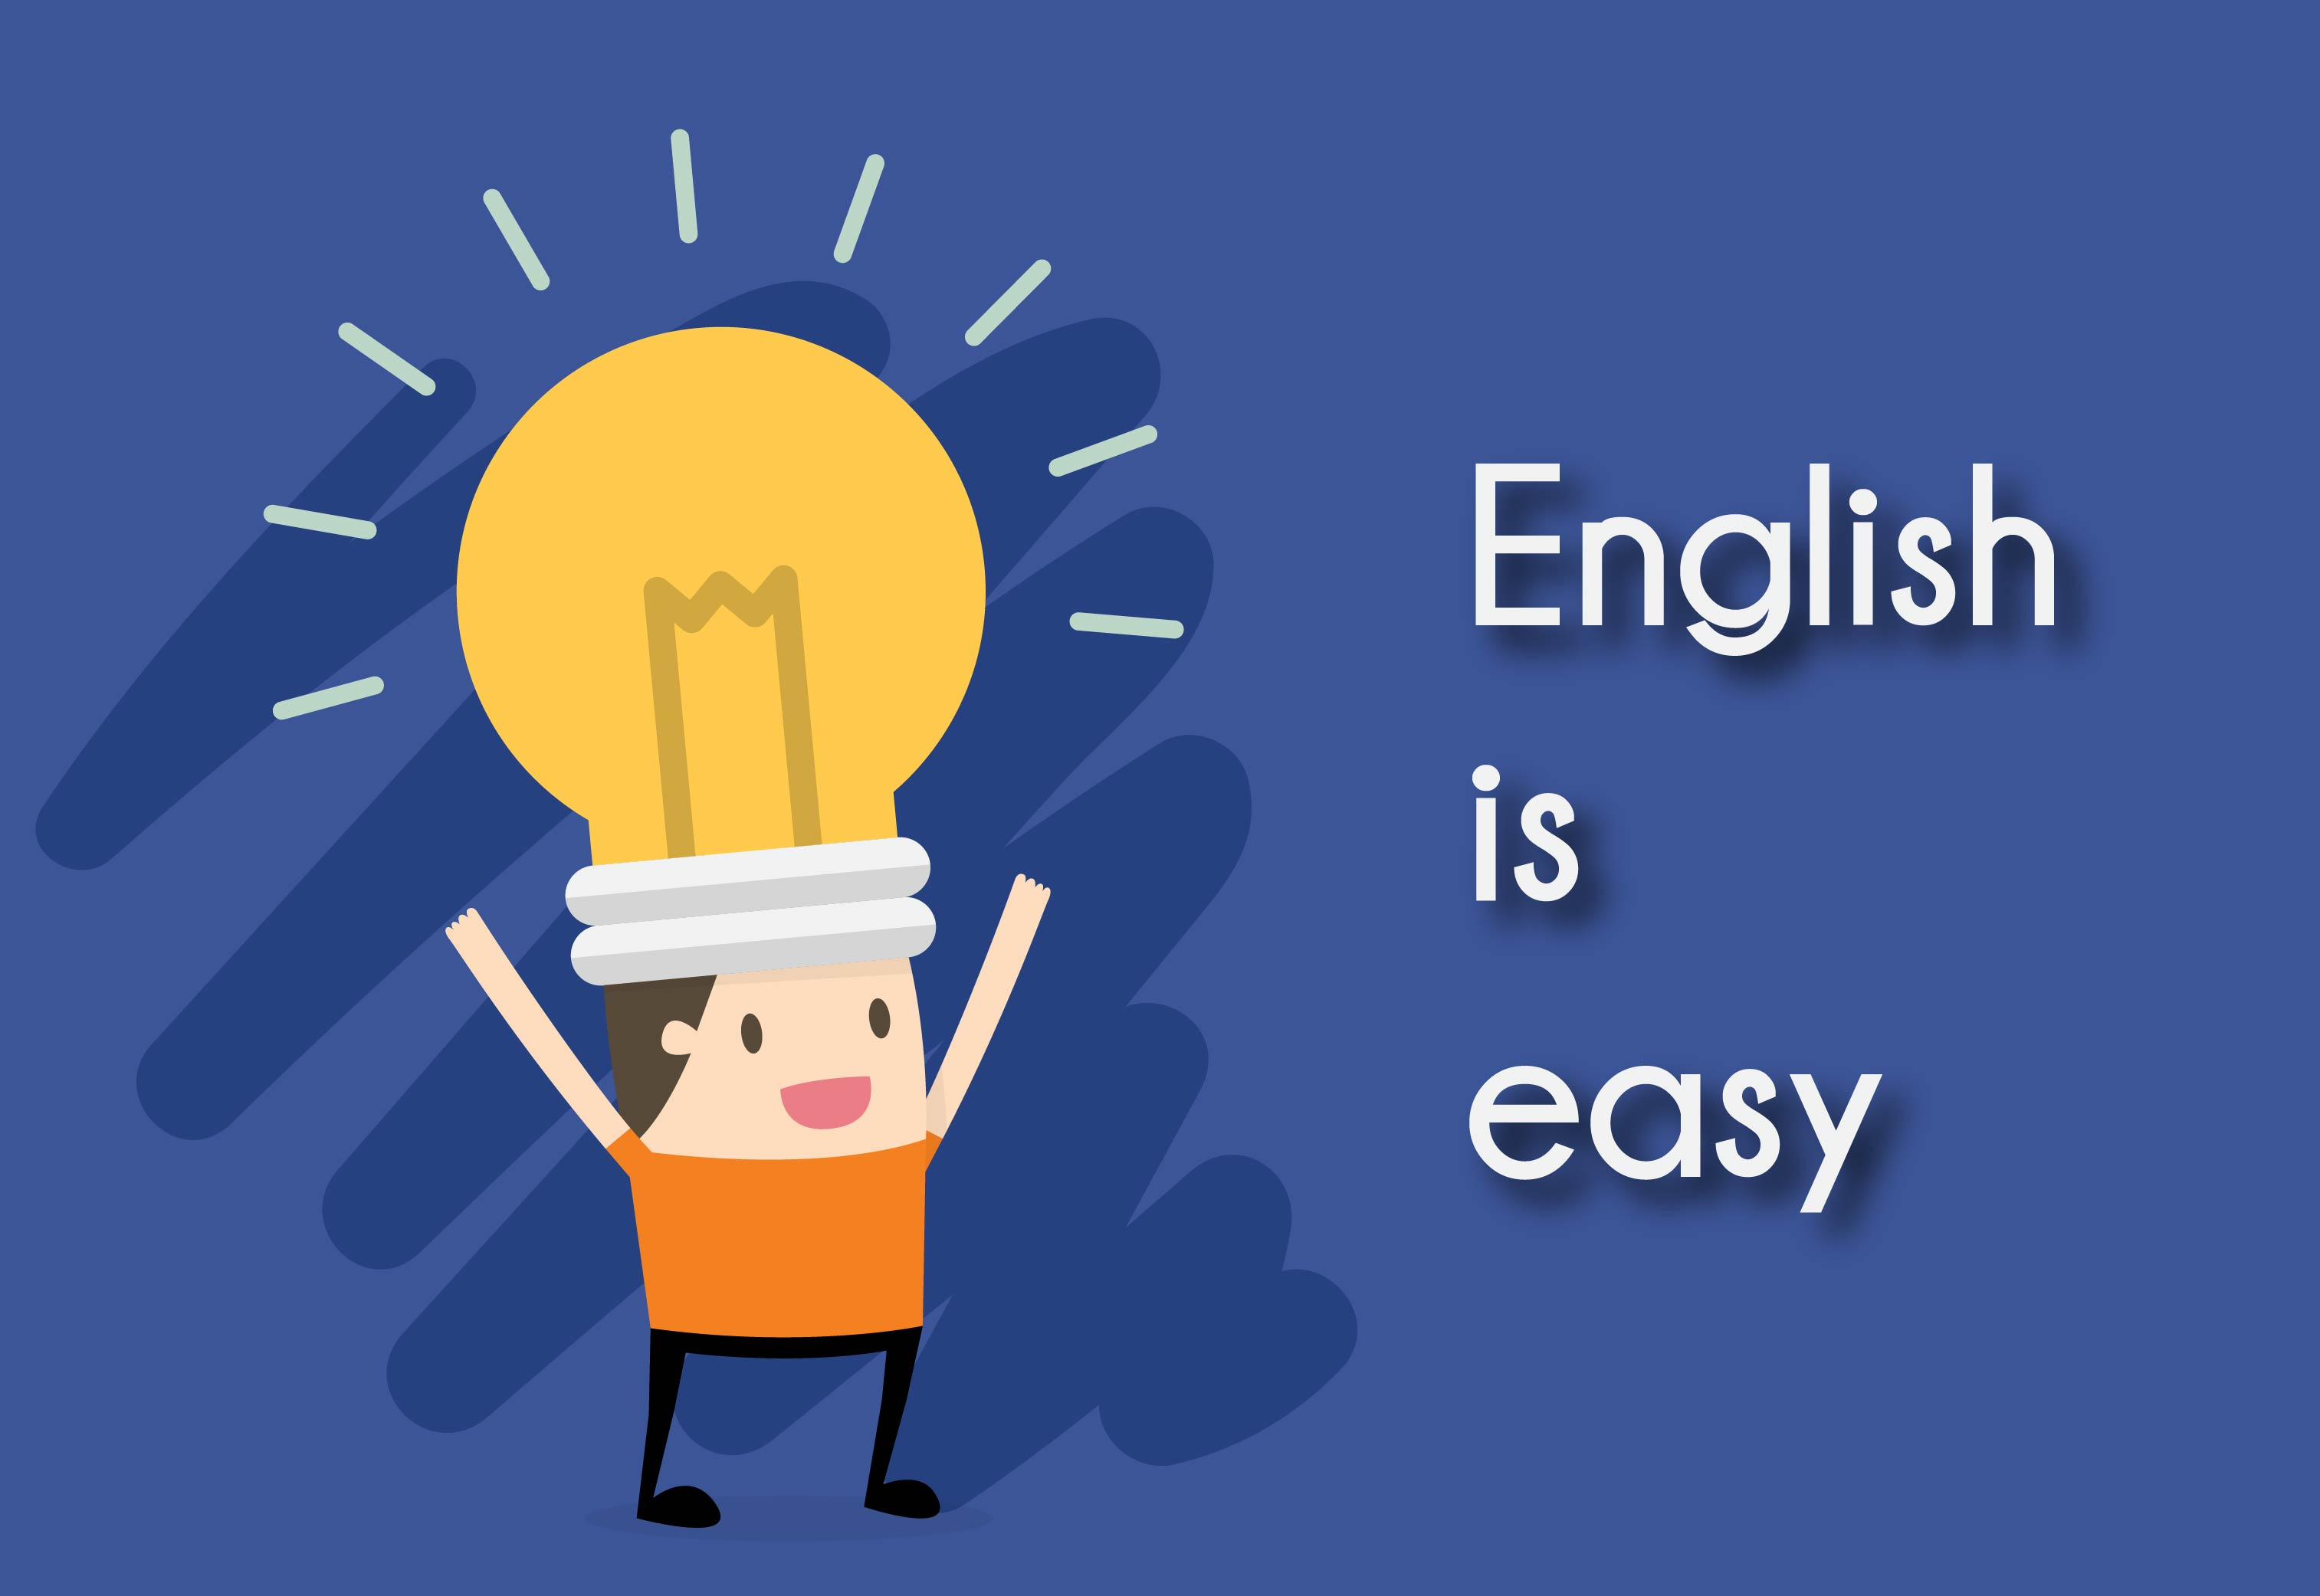 How to Practice English?